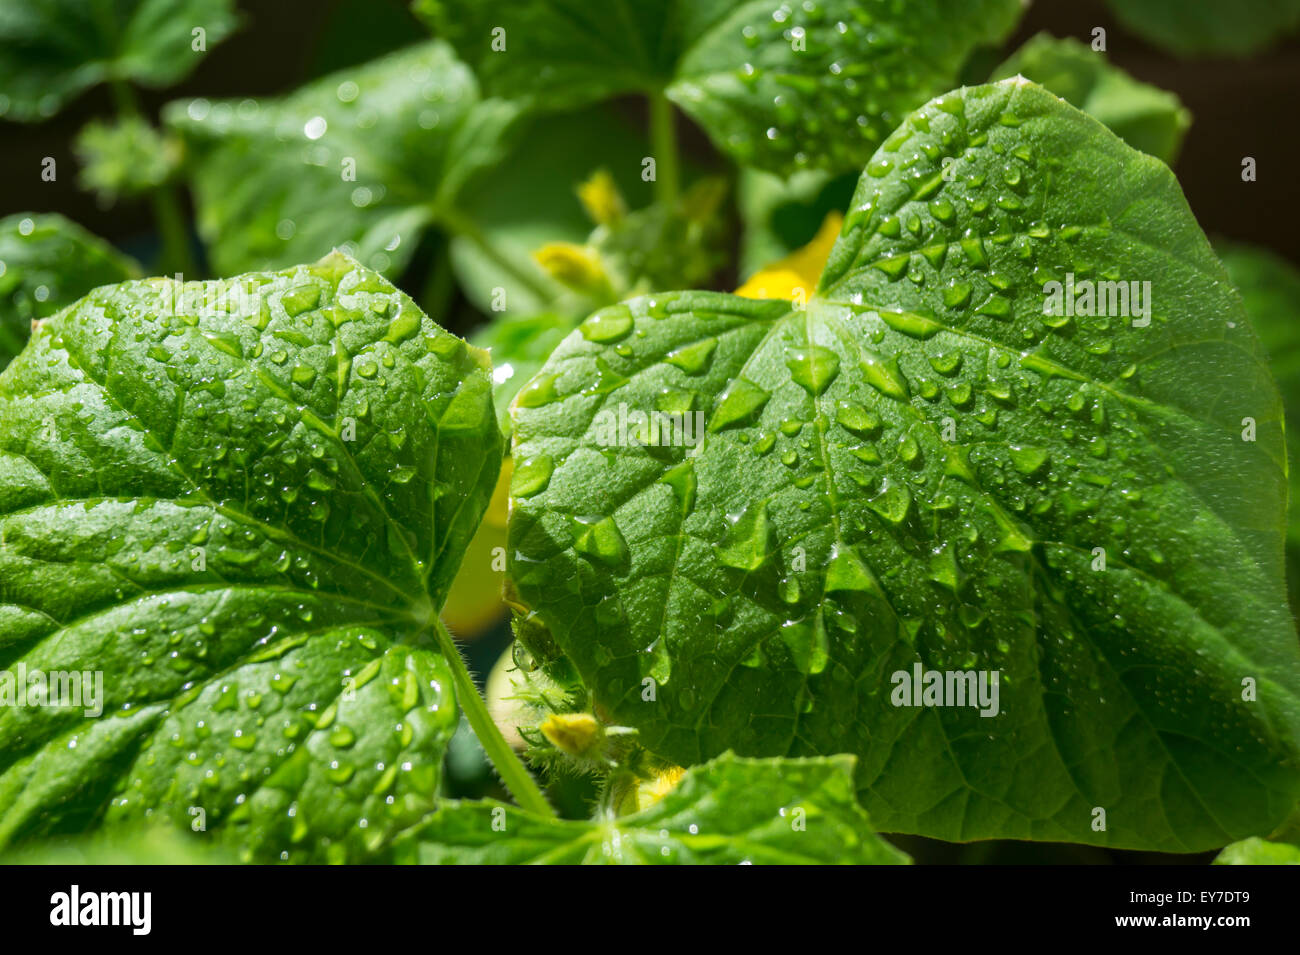 Green sheet cucumber with drop of water - Stock Image